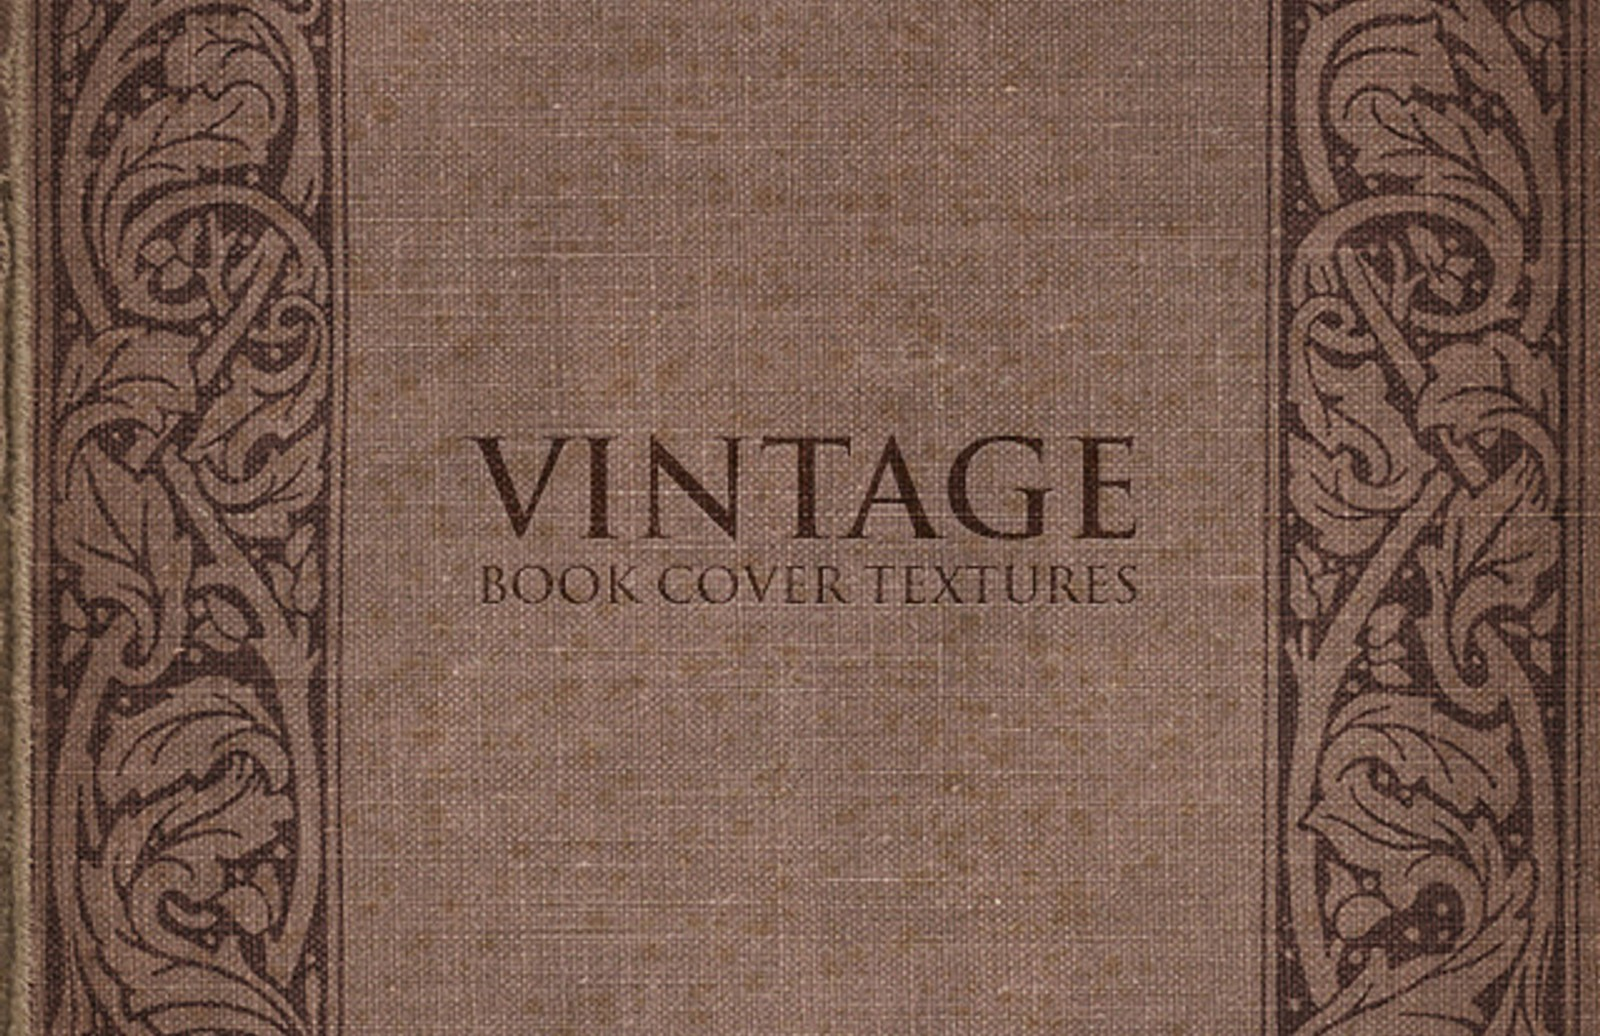 Book Cover Texture Year : Vintage book cover textures — medialoot